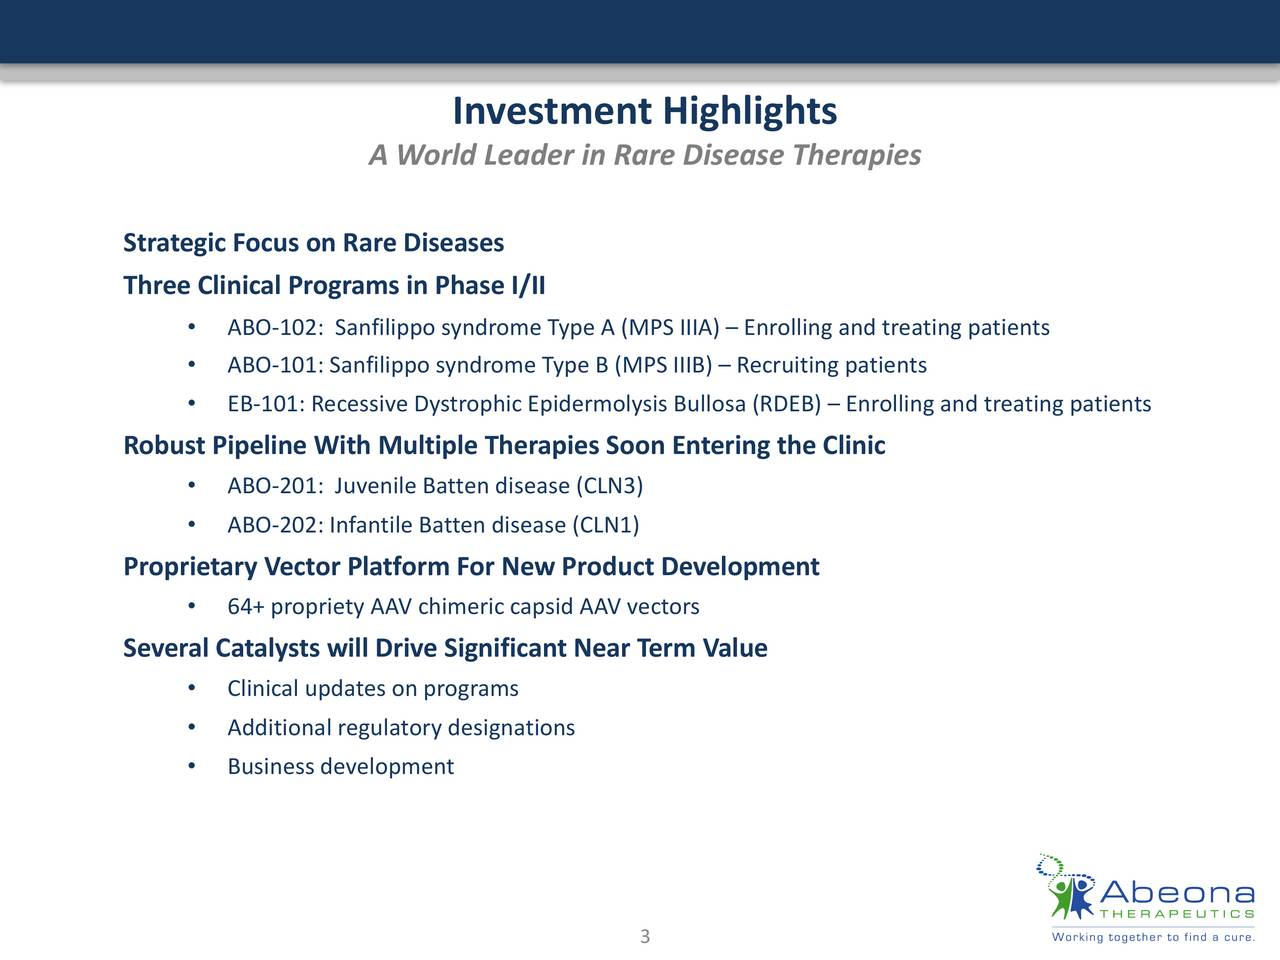 A World Leader in Rare Disease Therapies Strategic Focus on Rare Diseases Three Clinical Programs in Phase I/II ABO-102: Sanfilipposyndrome Type A (MPS IIIA) Enrolling and treating patients ABO-101: Sanfilipposyndrome Type B (MPS IIIB) Recruiting patients EB-101: Recessive Dystrophic Epidermolysis Bullosa (RDEB)  Enrolling and treating patients Robust Pipeline With Multiple Therapies Soon Entering the Clinic ABO-201: Juvenile Batten disease (CLN3) ABO-202: Infantile Batten disease (CLN1) Proprietary Vector Platform For New Product Development 64+ propriety AAV chimeric capsid AAV vectors Several Catalysts will Drive Significant Near Term Value Clinical updates on programs Additional regulatory designations Business development 3